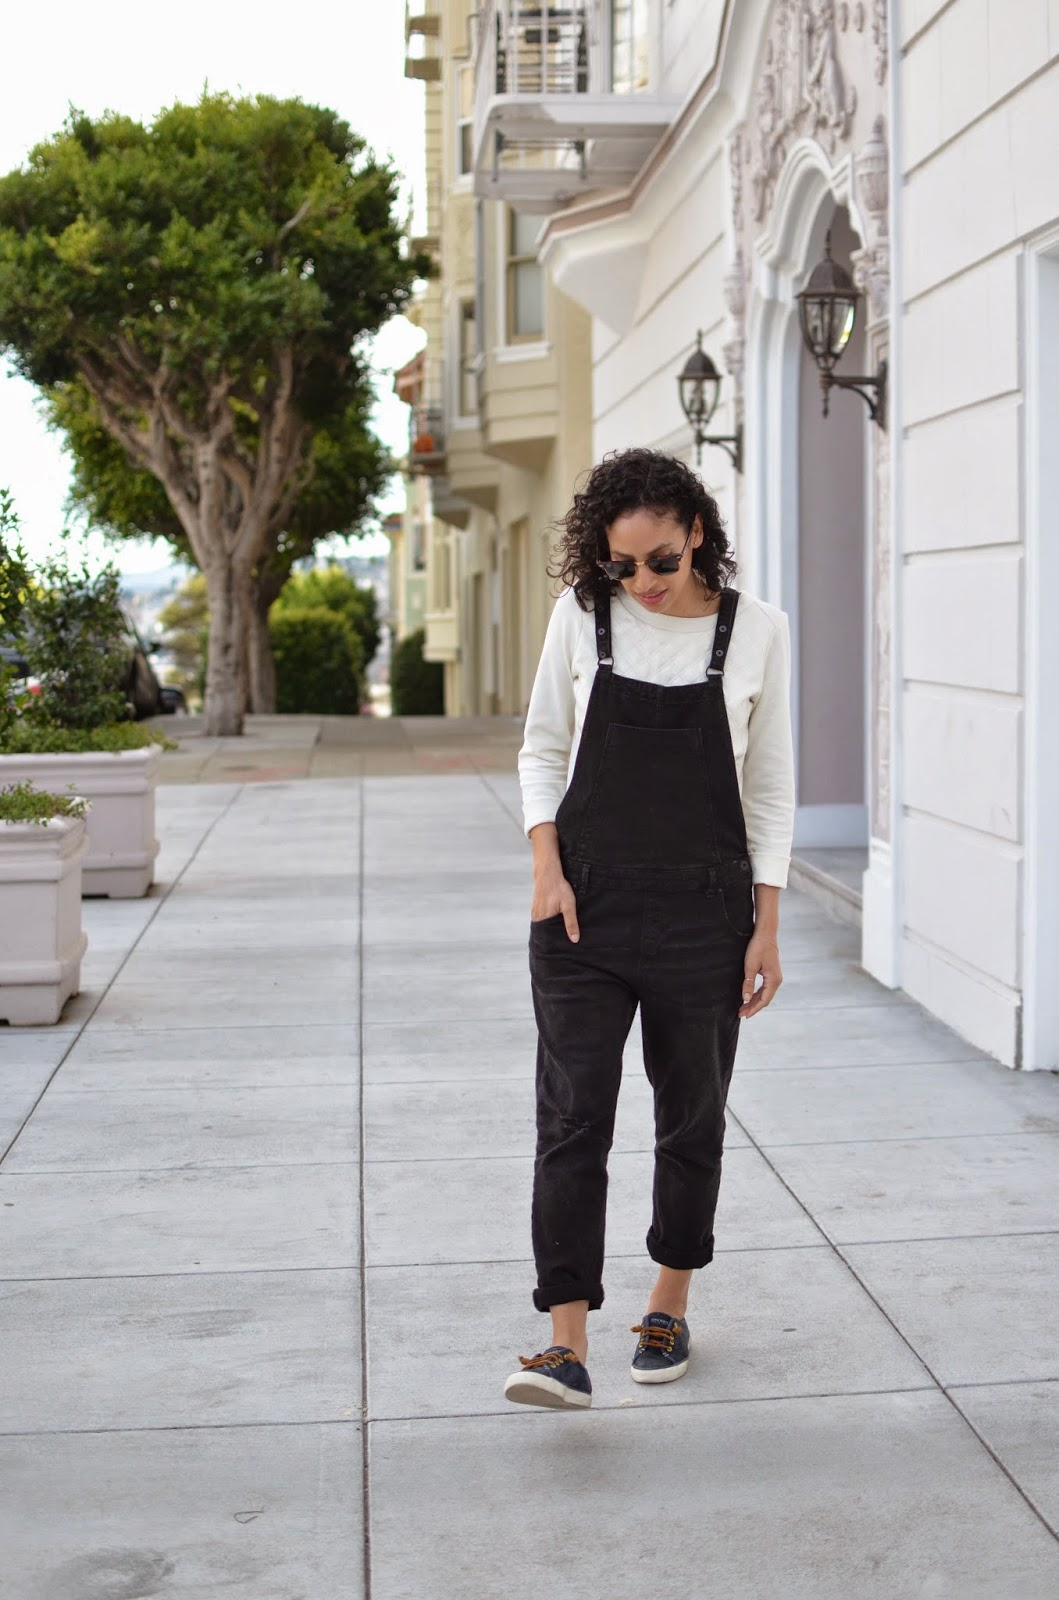 how to style overalls, zara overalls, black overalls, black and white, ray-ban clubmasters, curly hair, san francisco, street style, casual chic